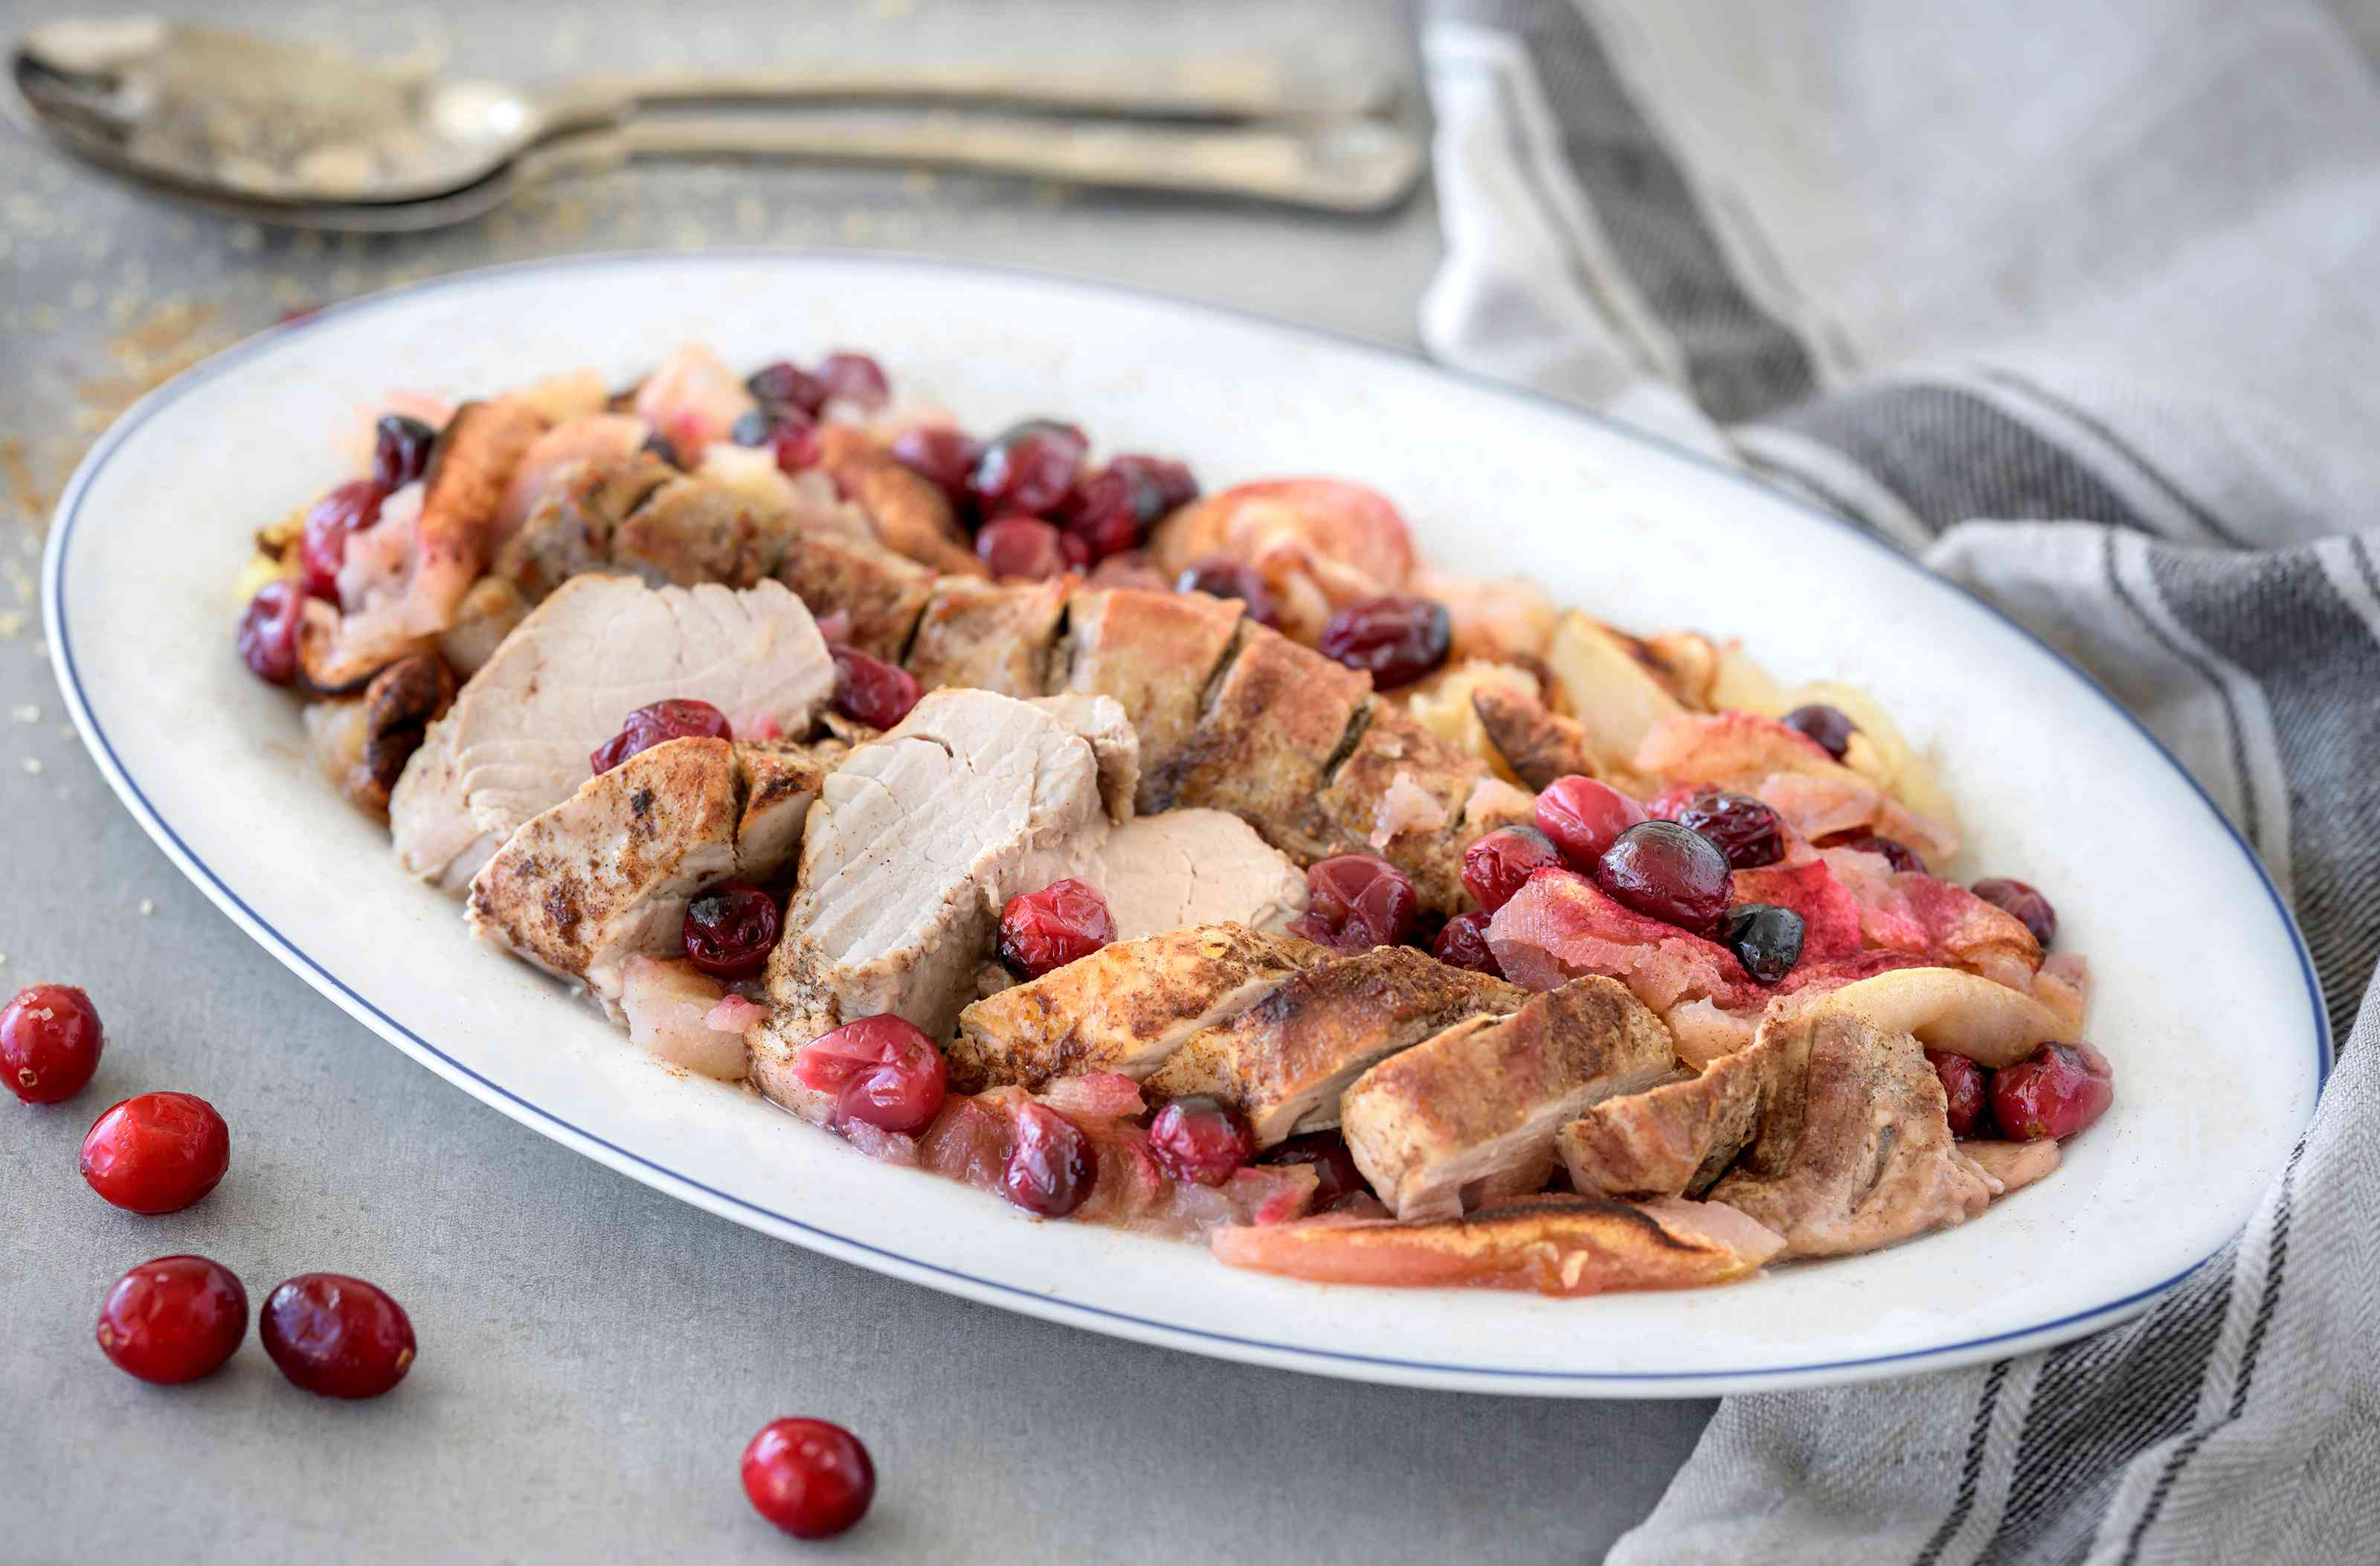 Roast pork with apples and cranberries recipe